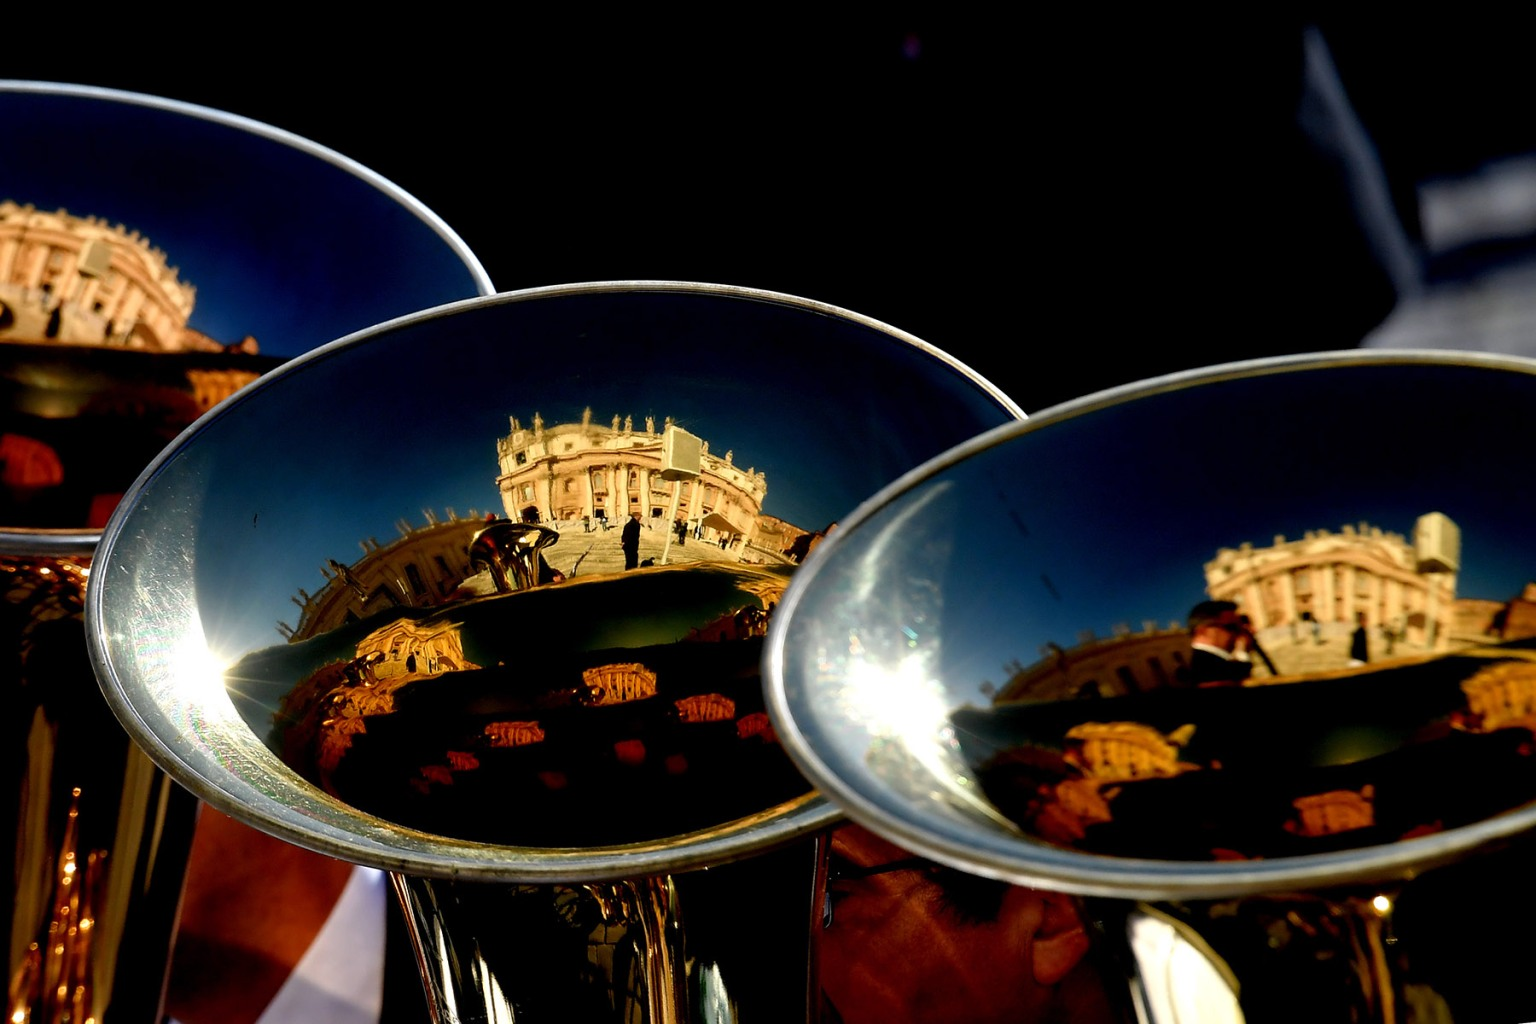 The basilica of St.Peter's is reflected in musical instruments during the pope's weekly general audience at the Vatican on Sept. 26. TIZIANA FABI/AFP/Getty Images